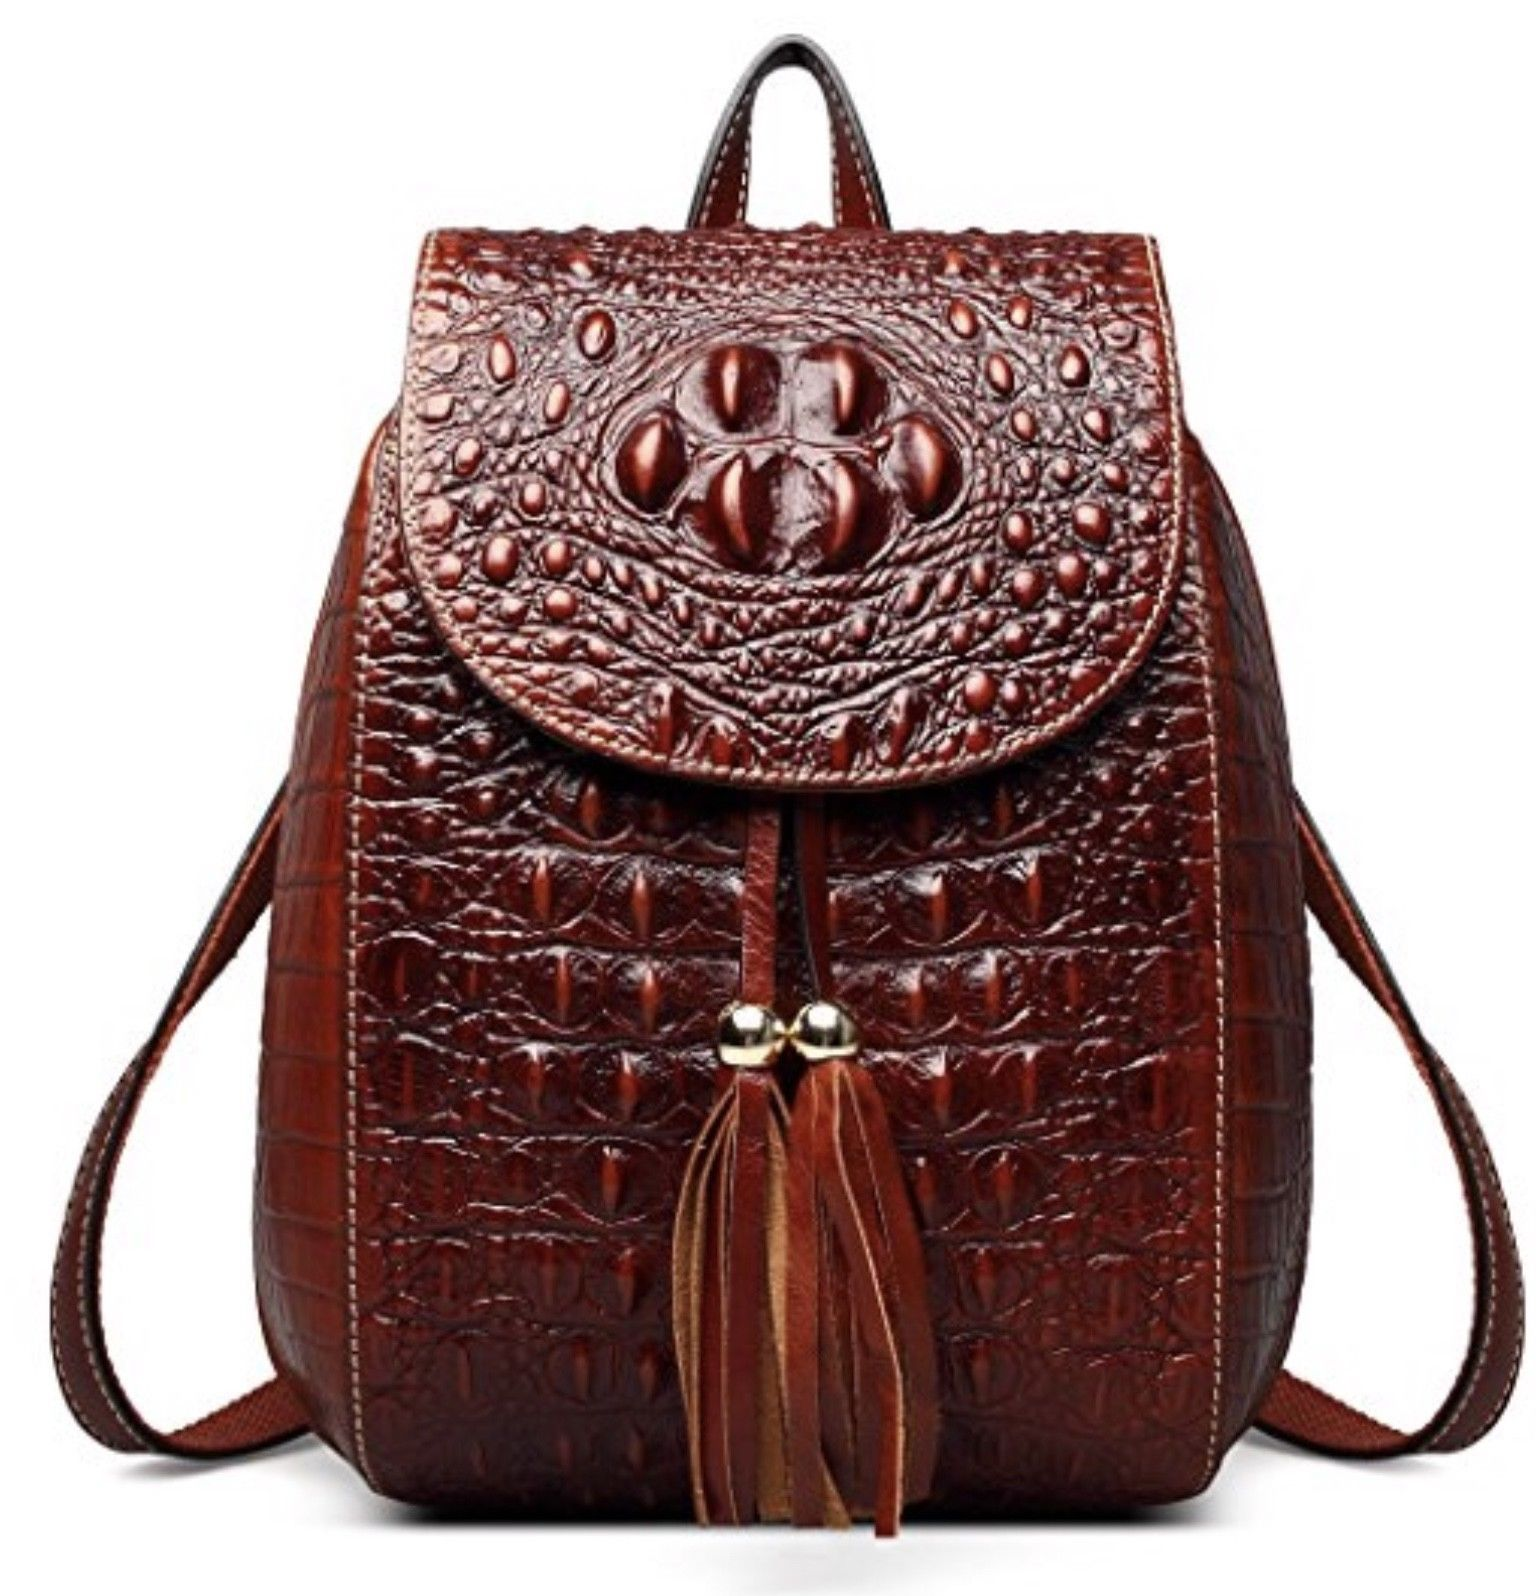 New Italian Leather Crocodile Embossed Backpack Shoulder Bag